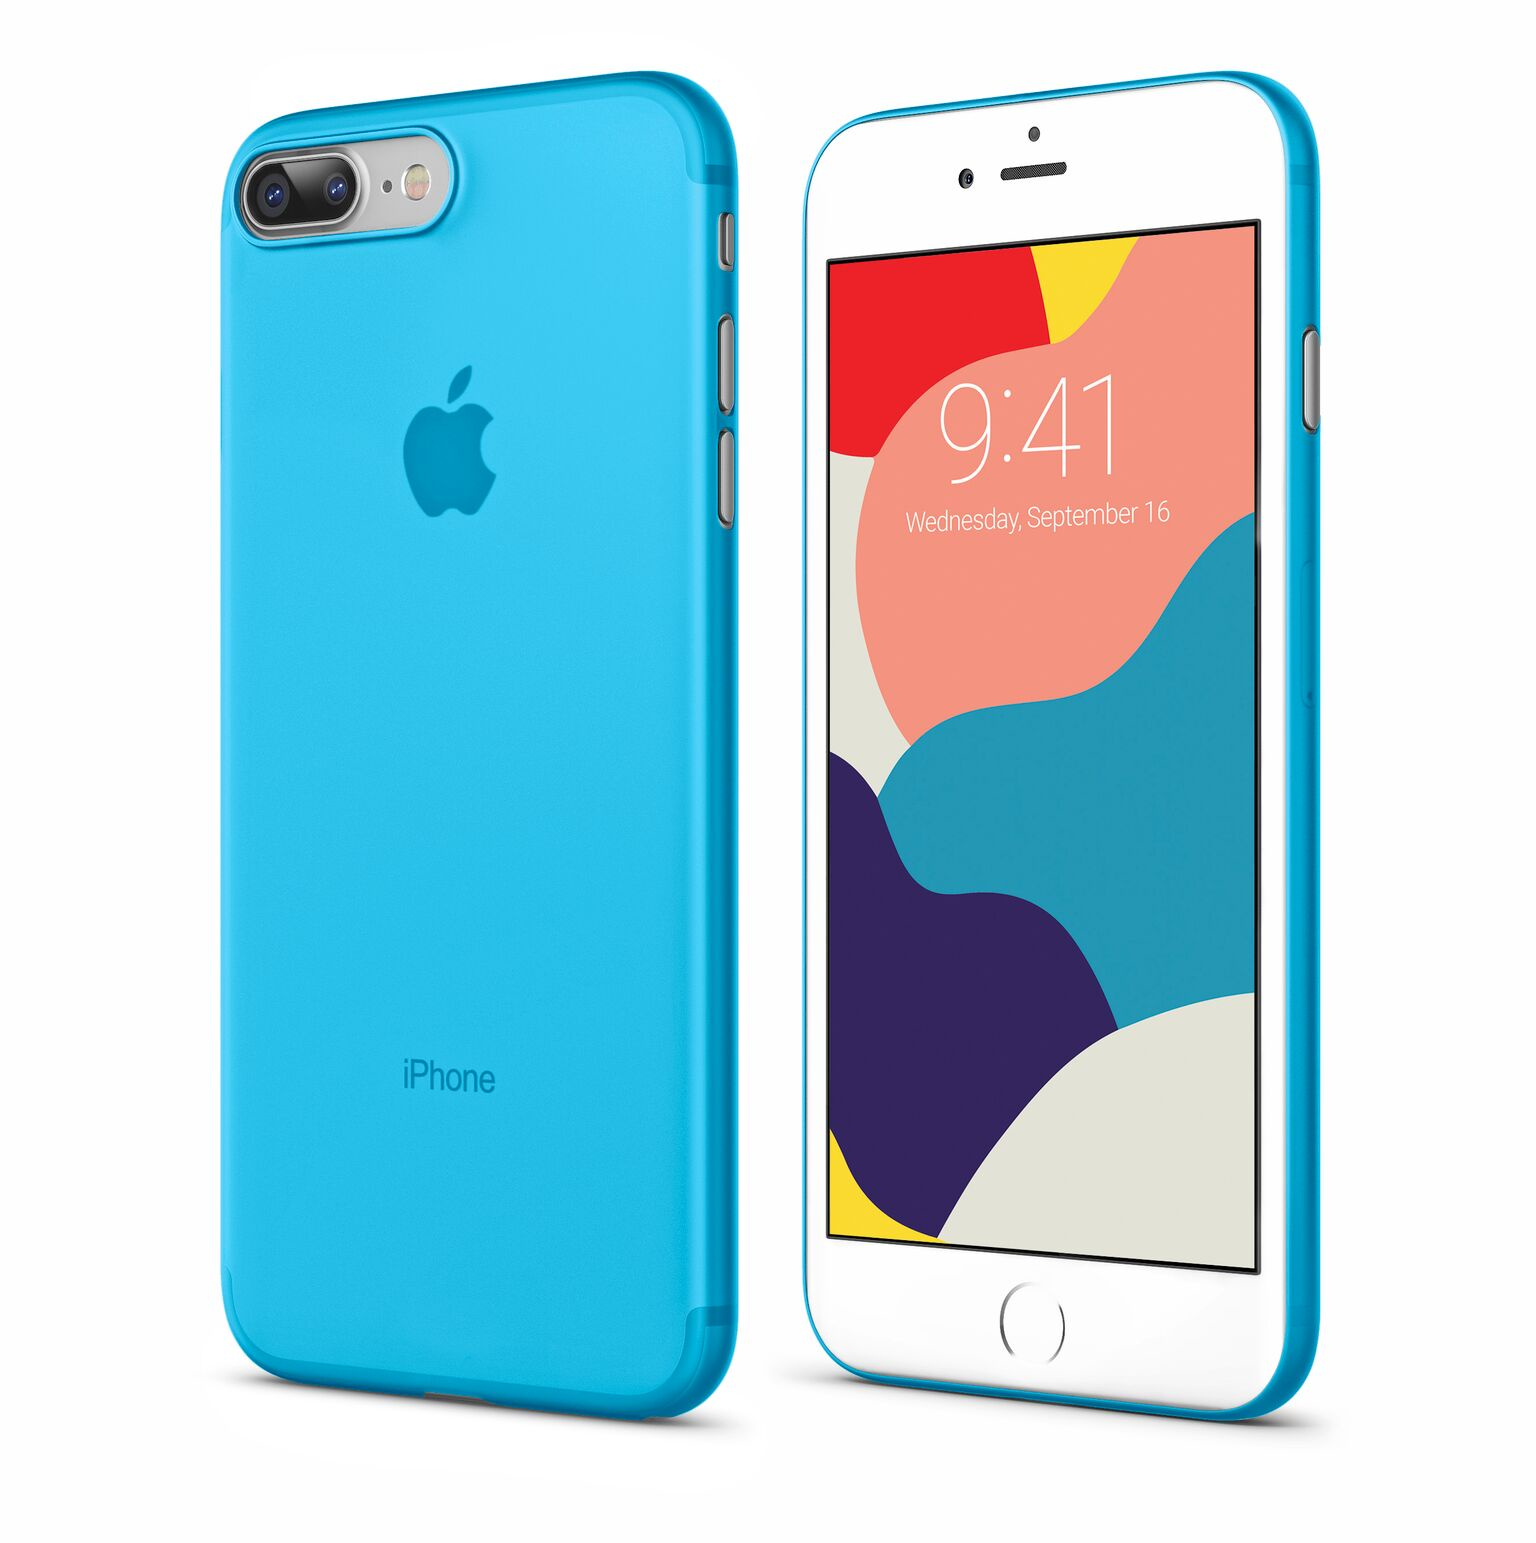 Чехол Vipe Flex для Apple iPhone 7 Plus / 8 Plus, 644-VPIP7PFLEXBLUE, голубой чехол vipe flex для apple iphone x 644 vpipxflexred красный